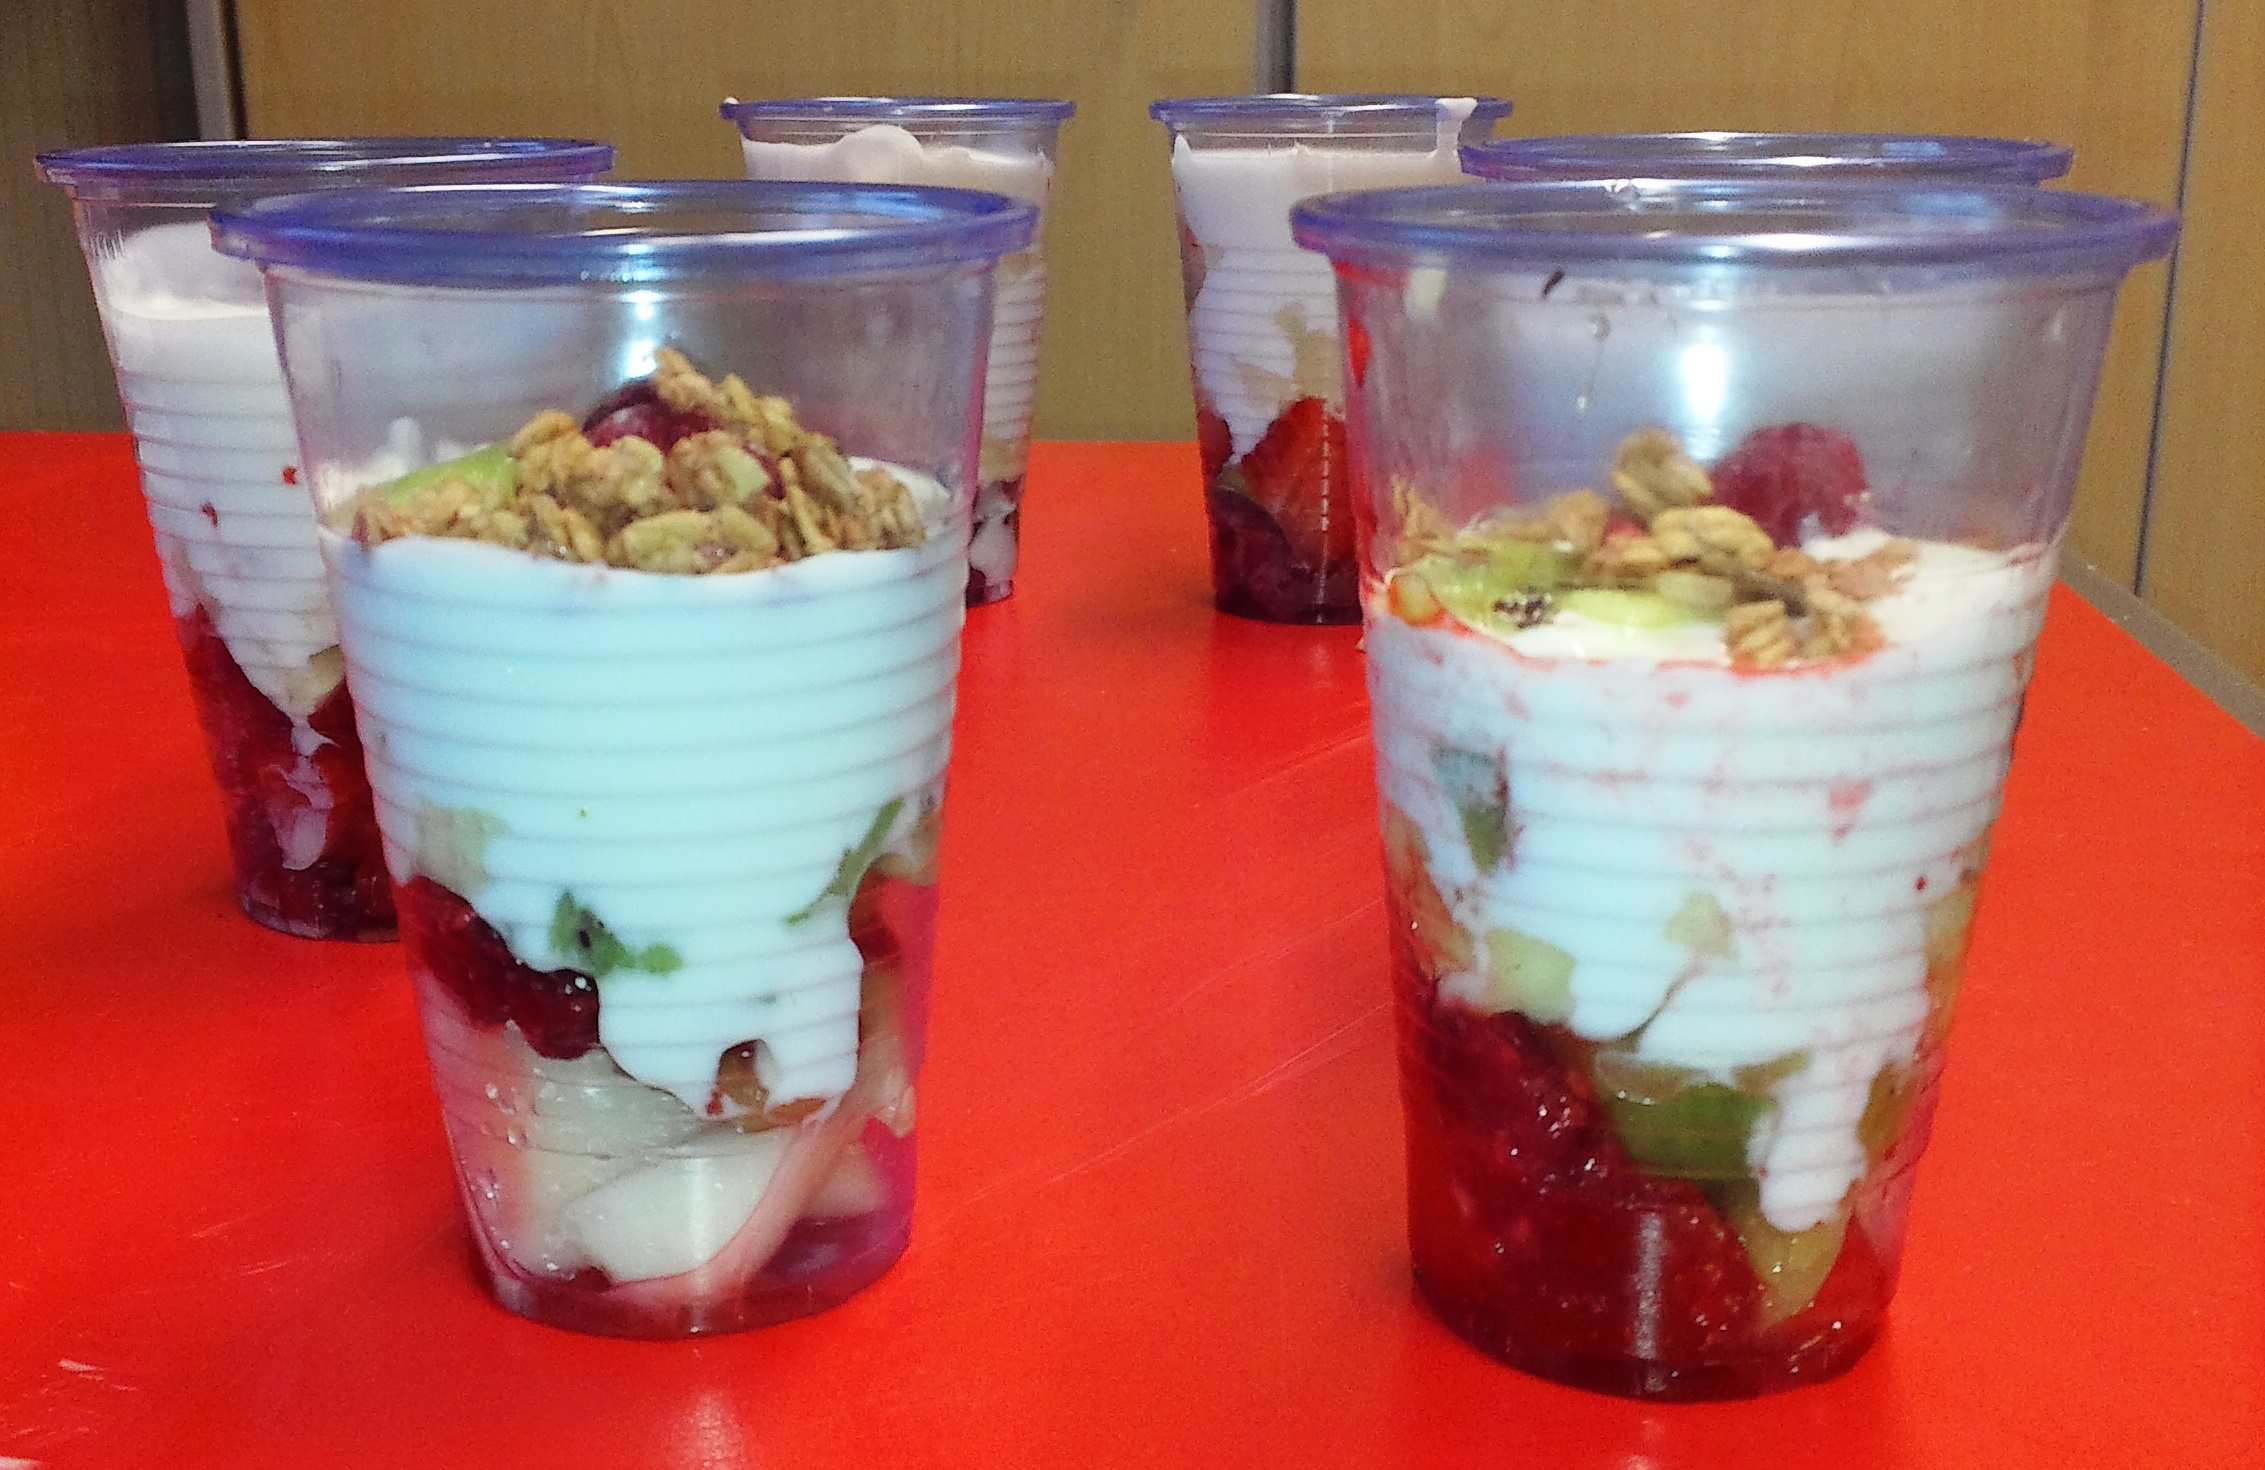 Fruit yoghurt pots topped with granola